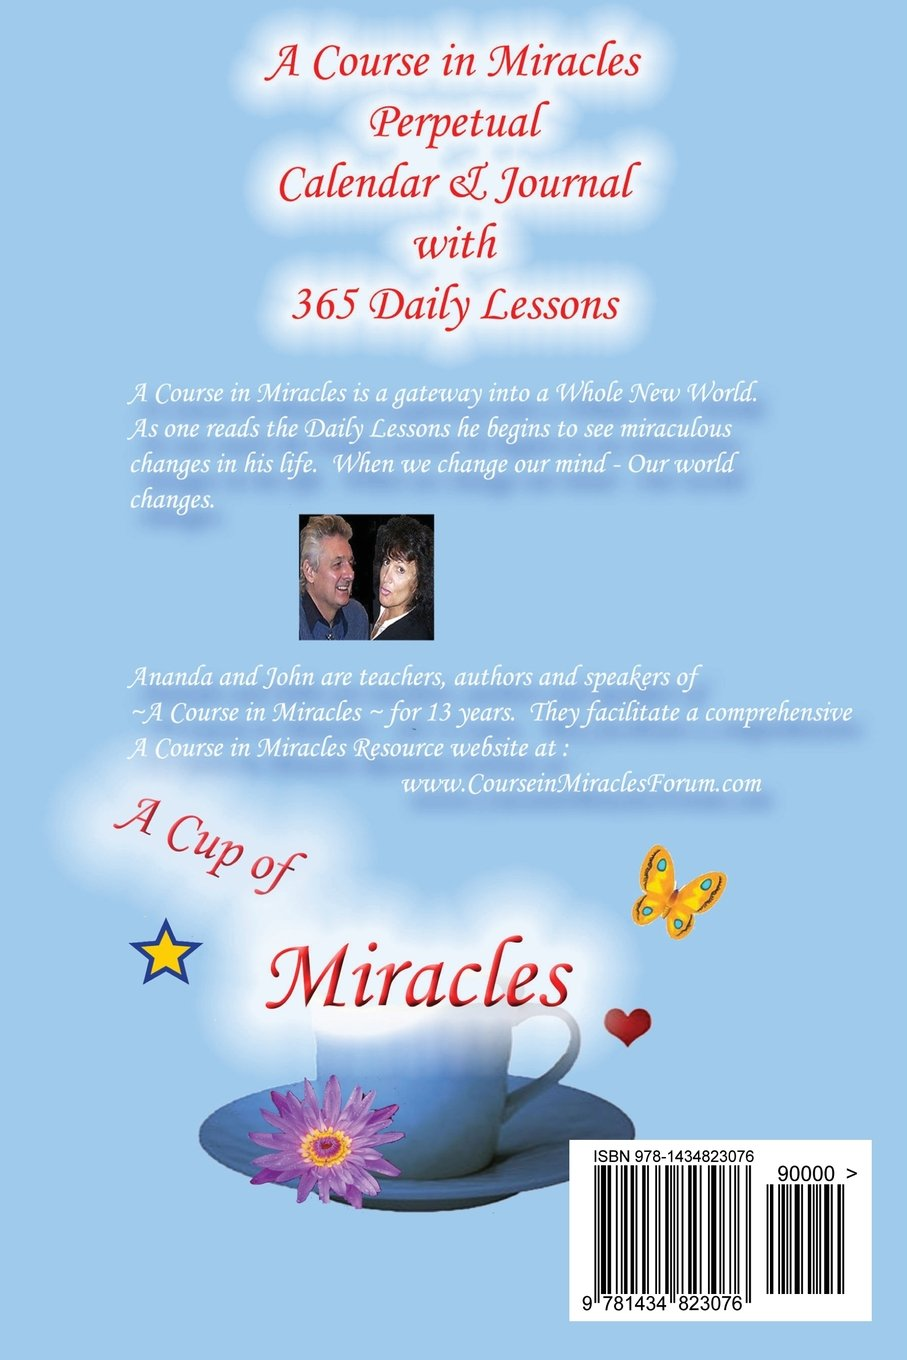 A Course in Miracles: Perpetual Calendar and Notebook: Amazon.co ...